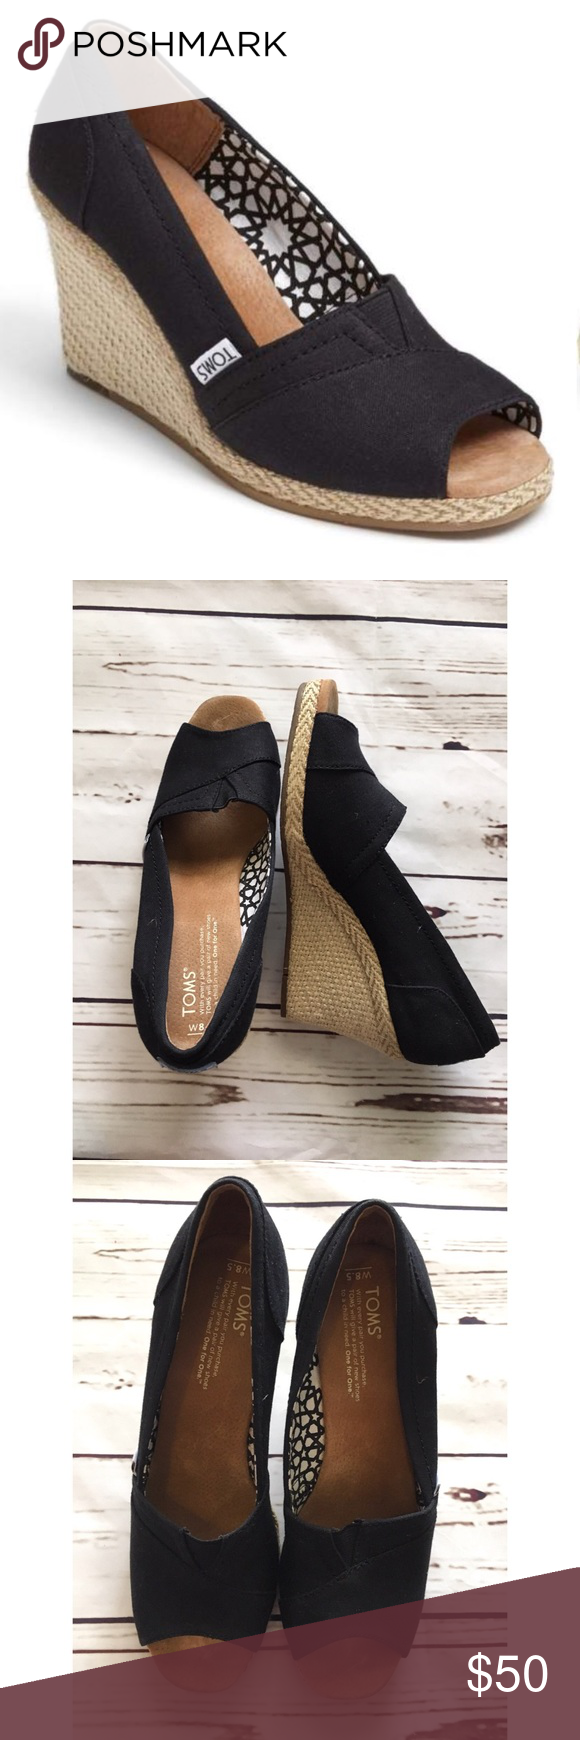 a1f755e268c TOMS calypso black canvas peep toe wedges size 8.5 Toms Calypso Wedge Black  Size 8.5 Woven trim accents the wrapped wedge heel of a summery open-toe  pump ...